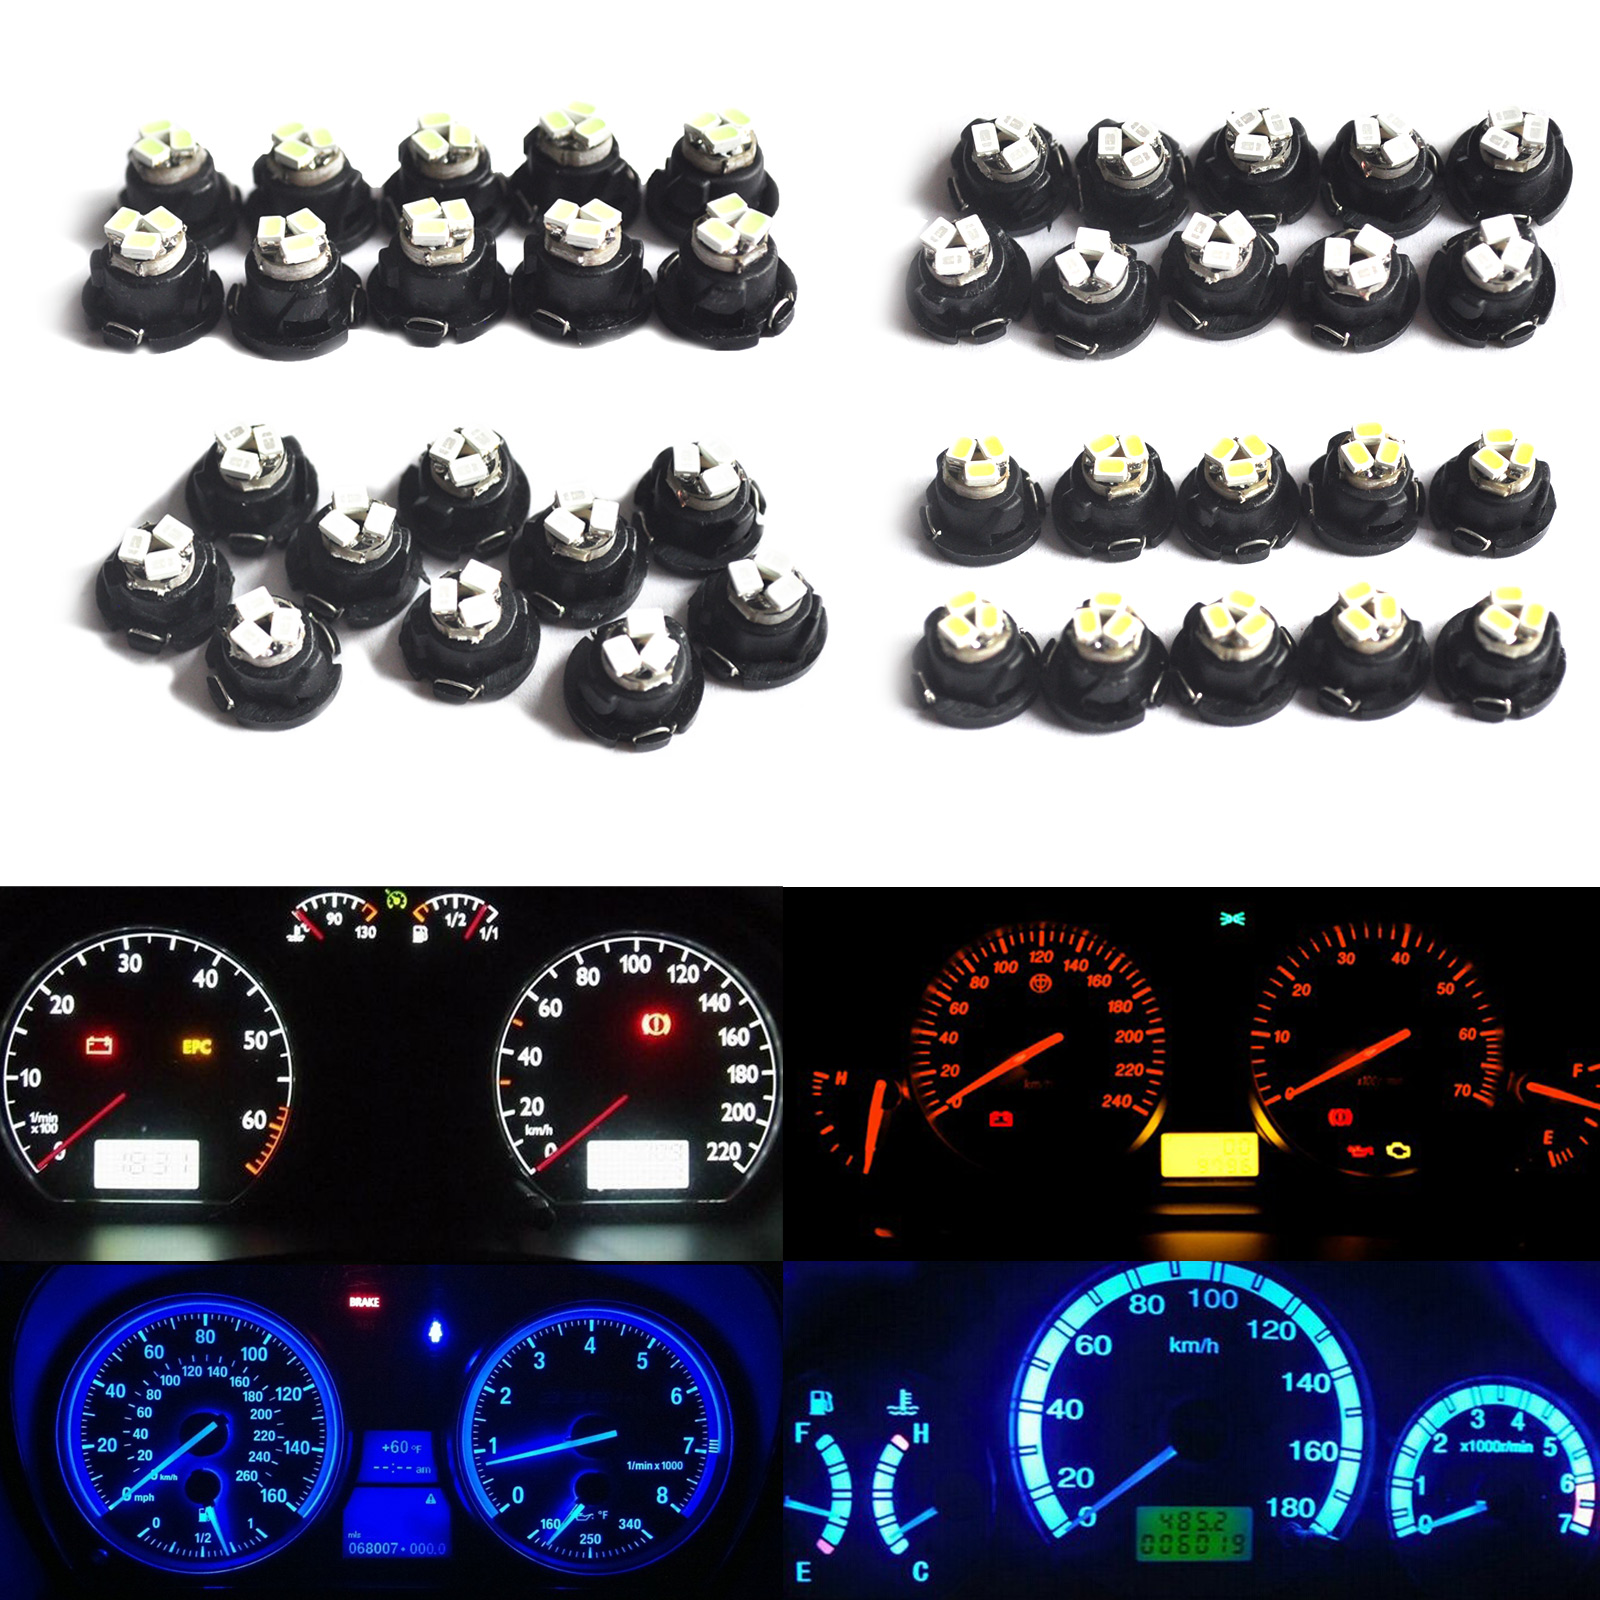 10PCS T4.7/T5 LED Wedge Switch Radio Climate Control Bulb Instrument Dashboard Dash Indicator Light Bulb Ac Panel Bulb 5pcs lot led indicator light lamp pilot dash direction bulb dashboard panel instrument light car truck boat 5 color